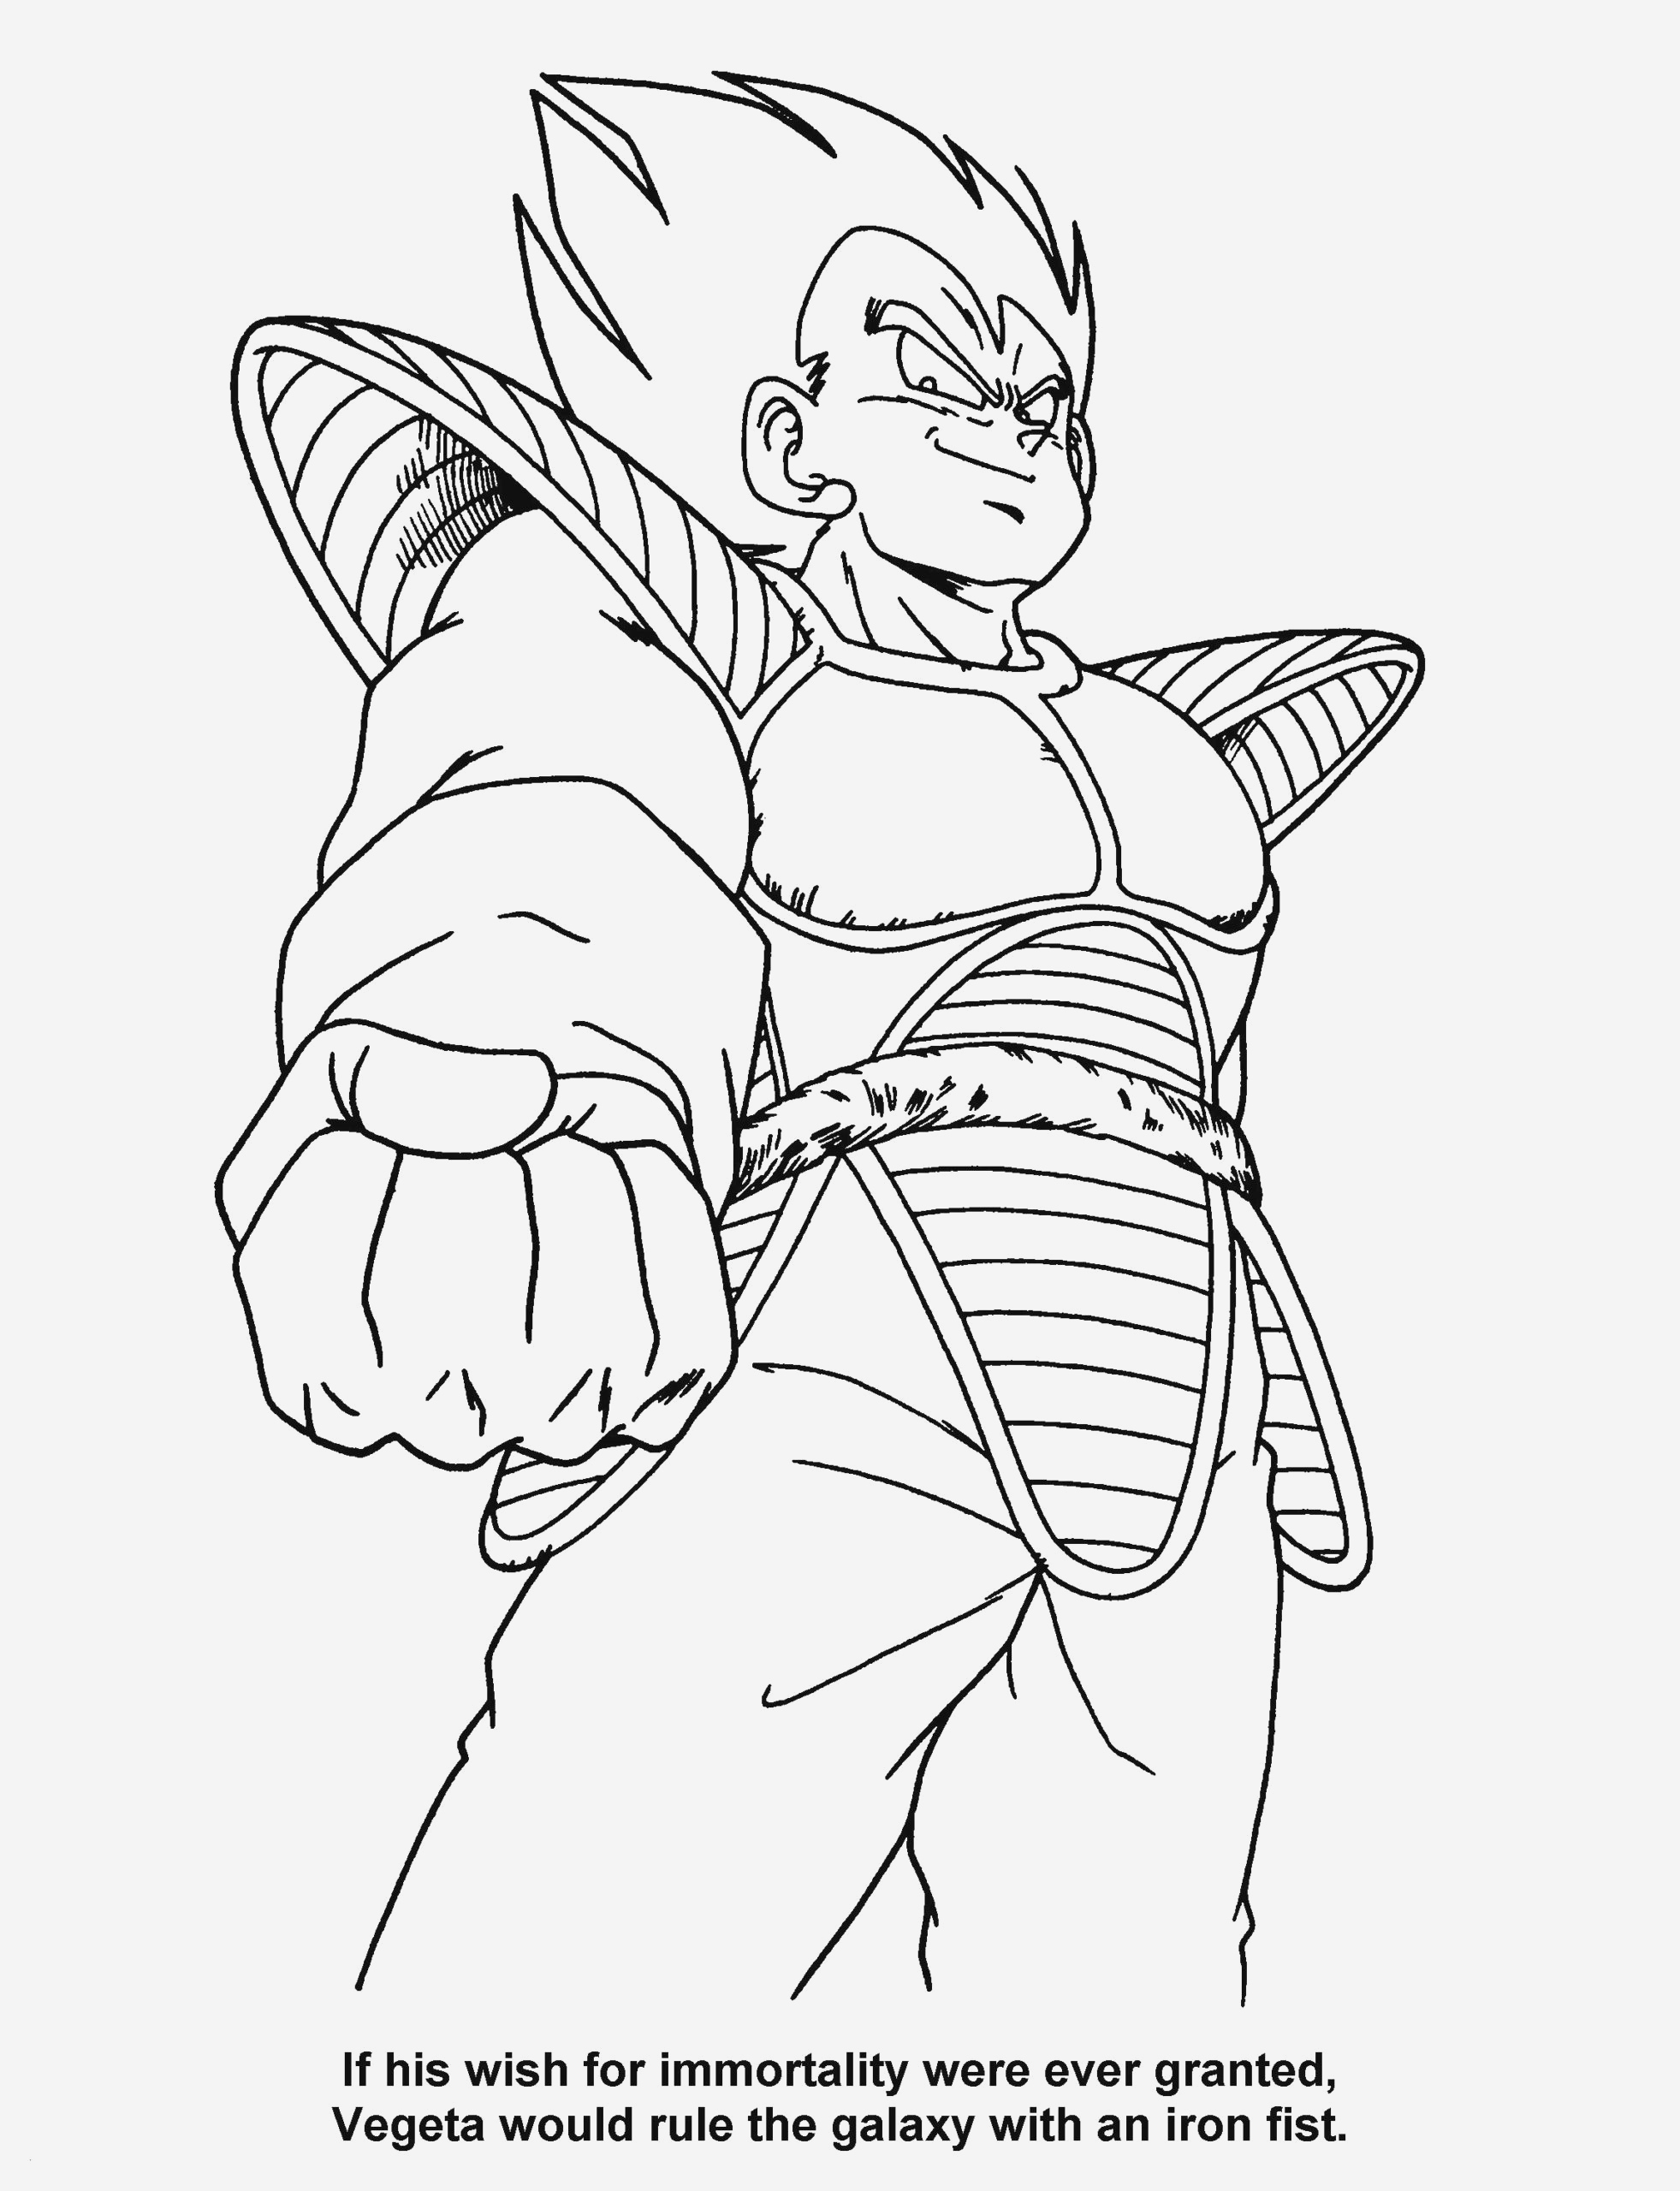 Coloriage Vegeta A Imprimer Awesome Coloring Pages Coloring Book Dragon Ball Super Saiyan Goku Of Coloriage Vegeta A Imprimer